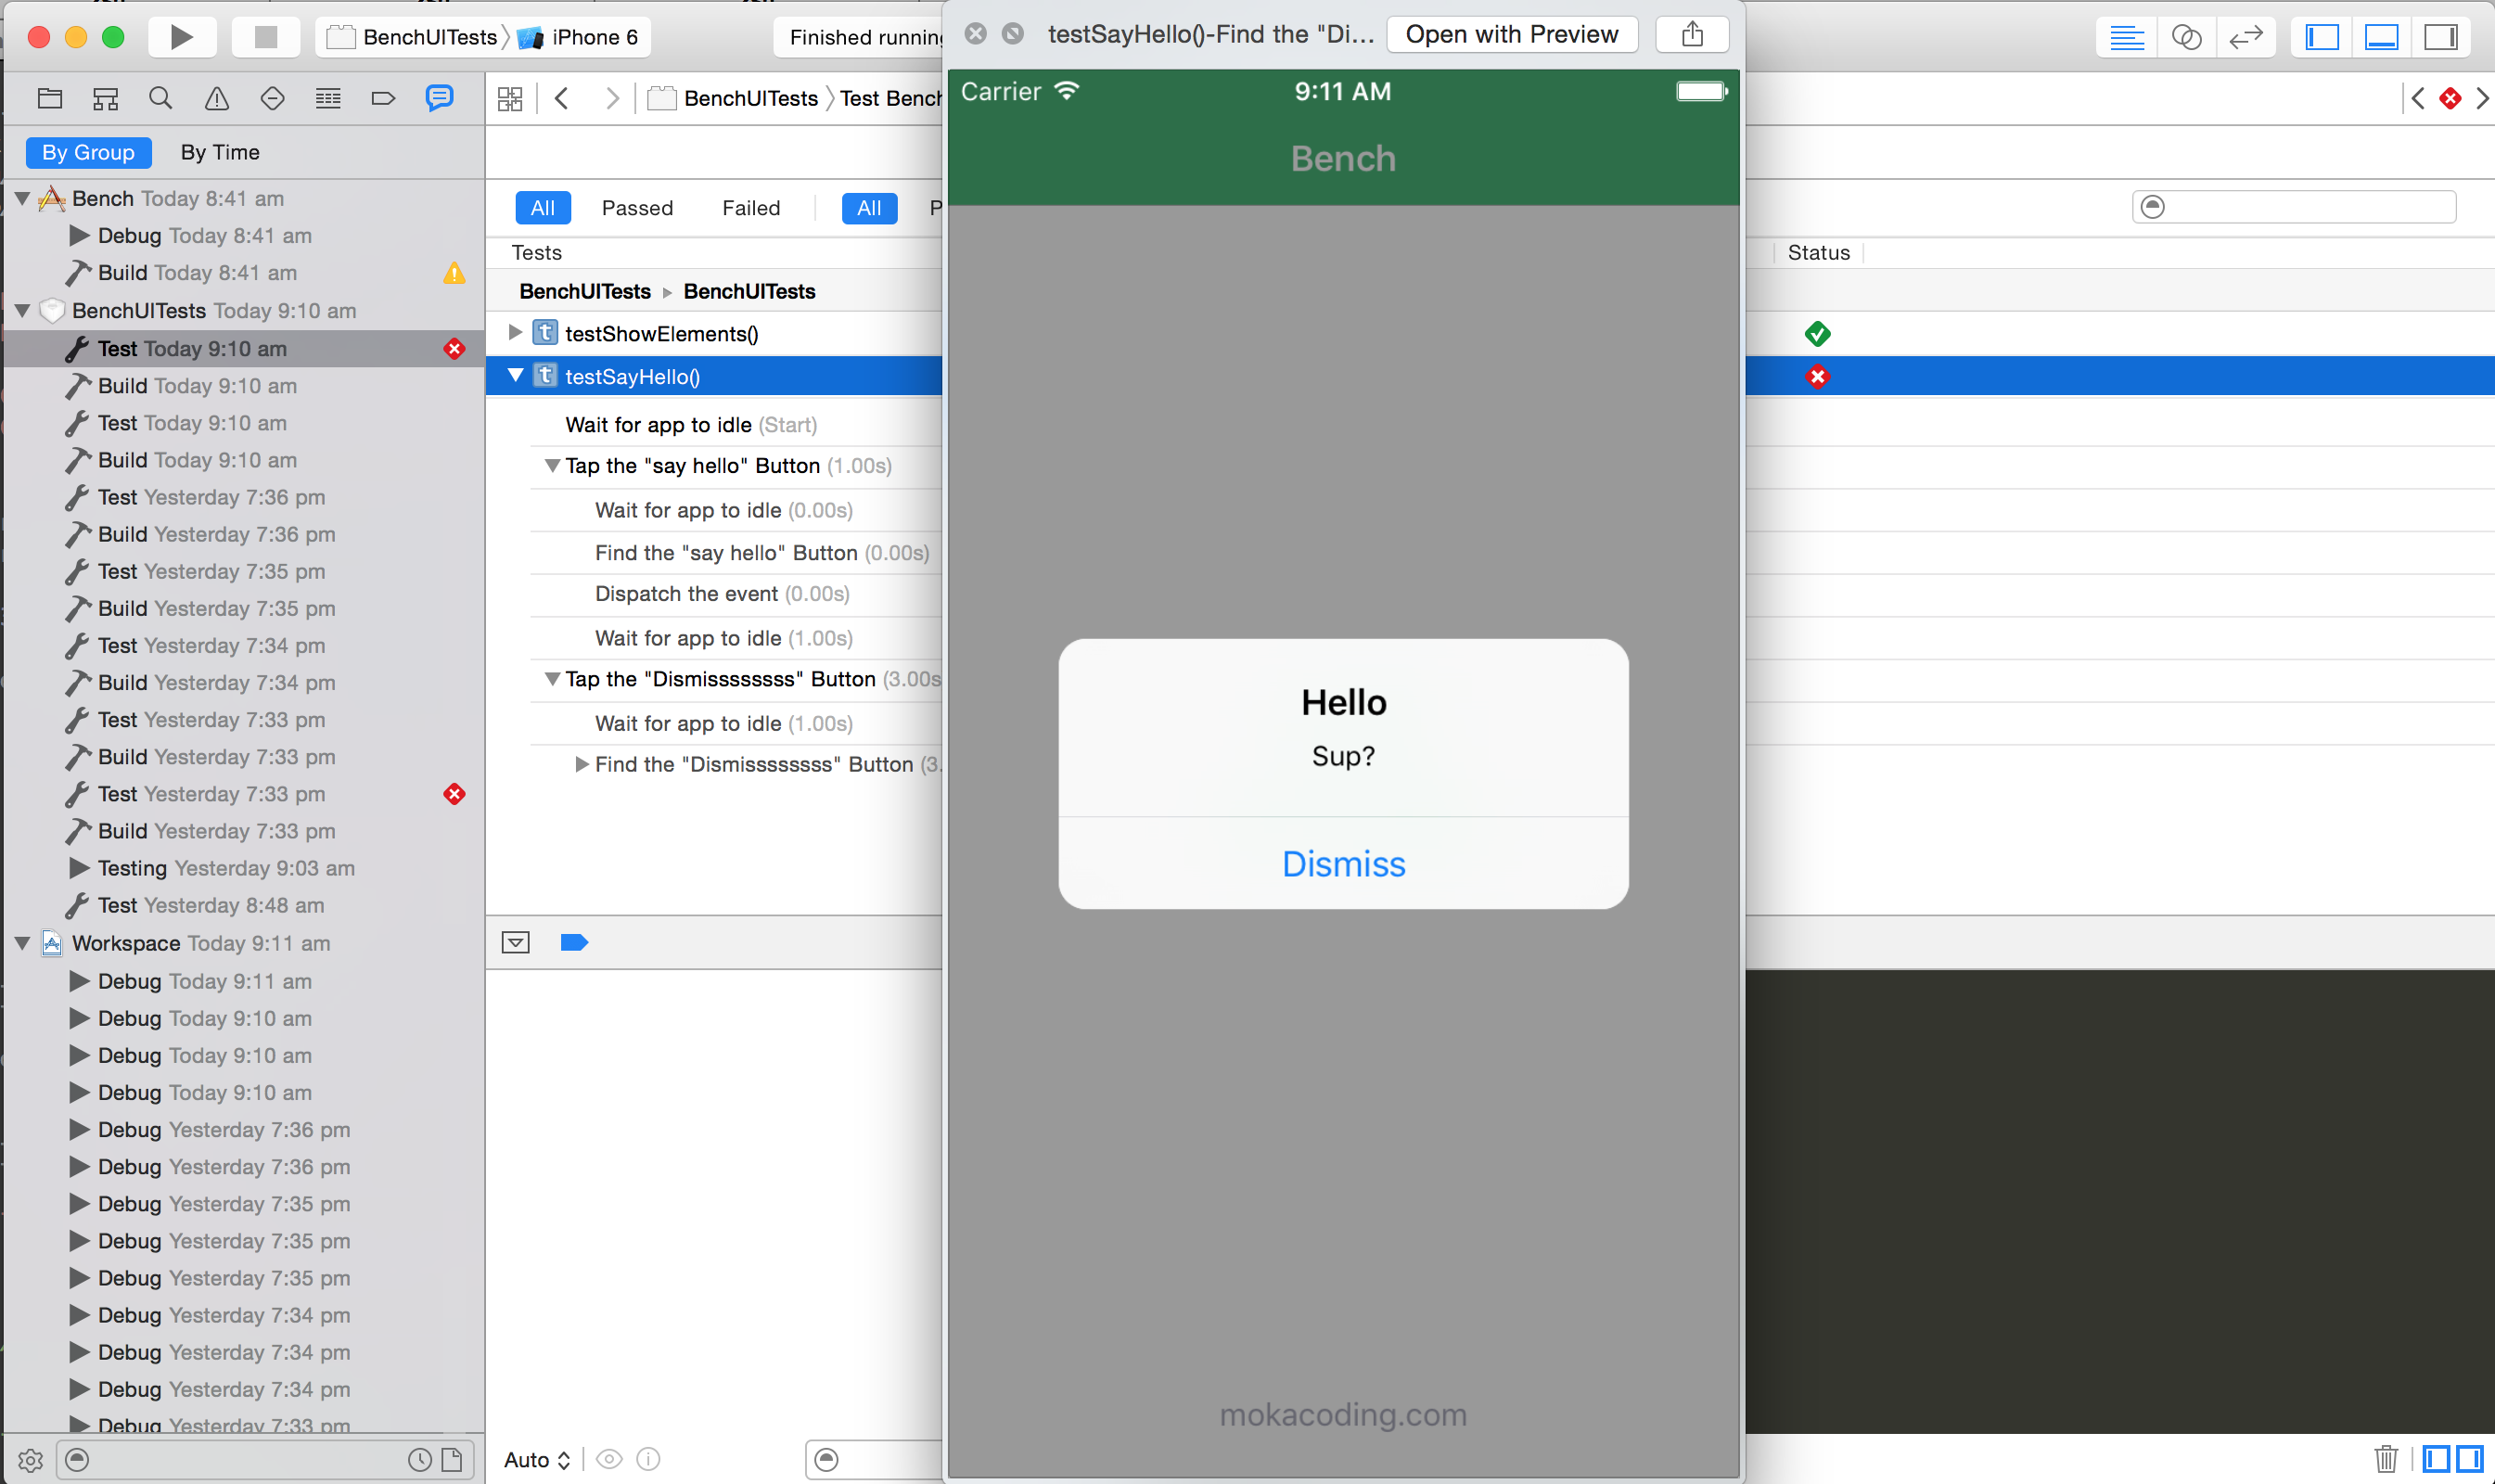 Xcode 7 UI testing, a first look | mokacoding